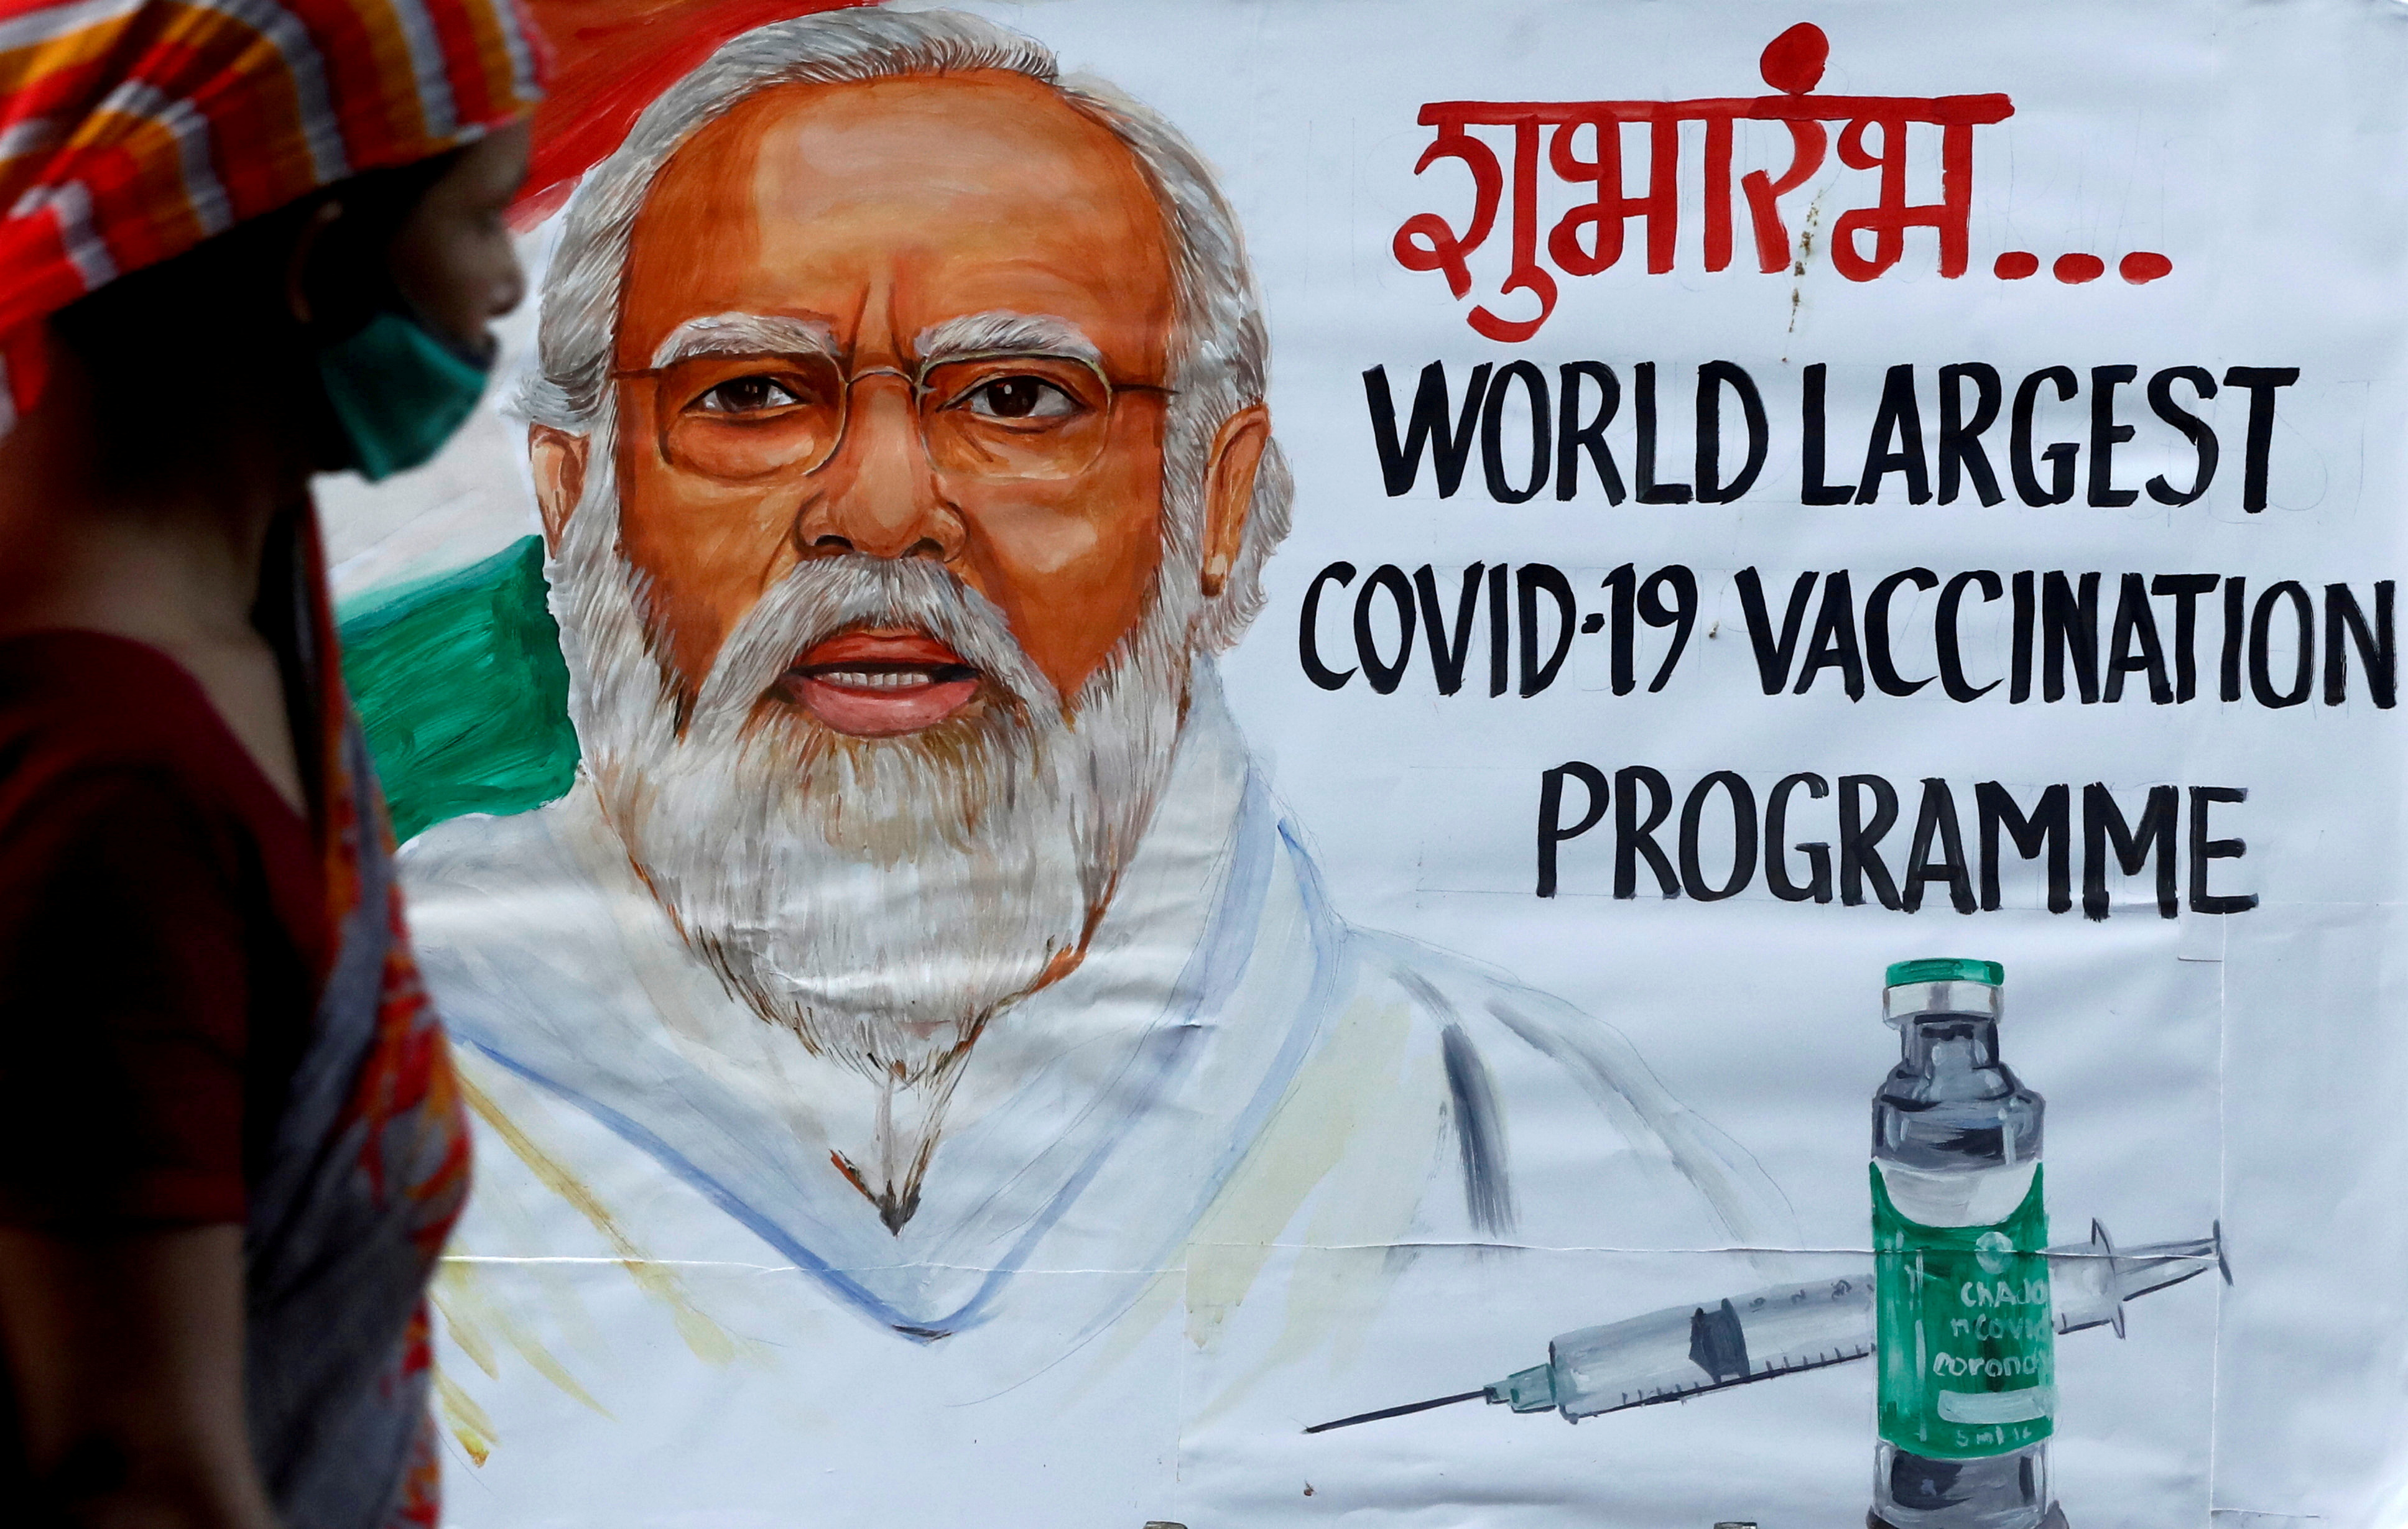 India Gets New Ministers For Health It Oil Amid Covid Crisis Reuters